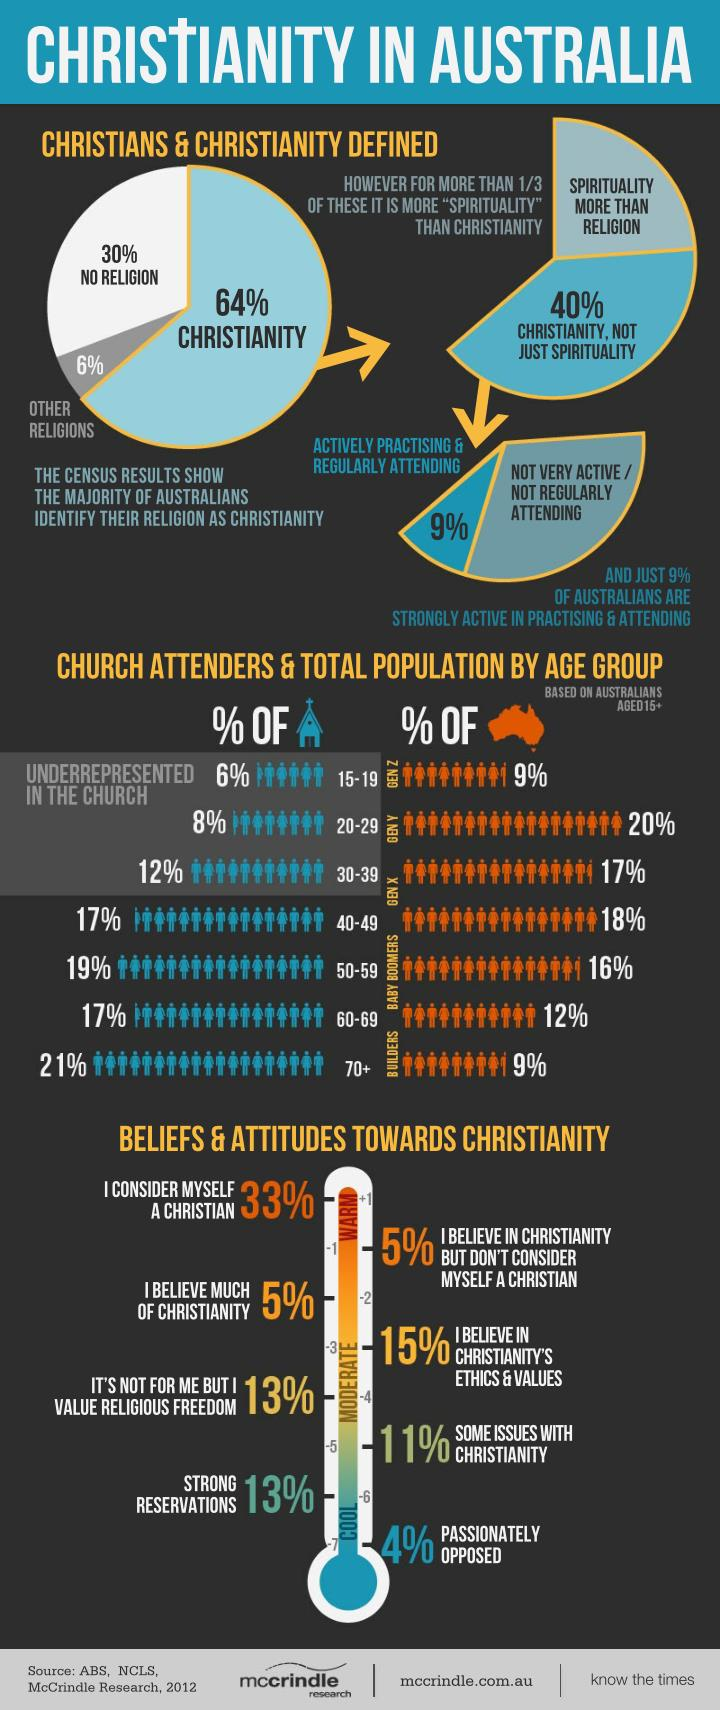 CHRISTIANITY IN AUSTRALIA